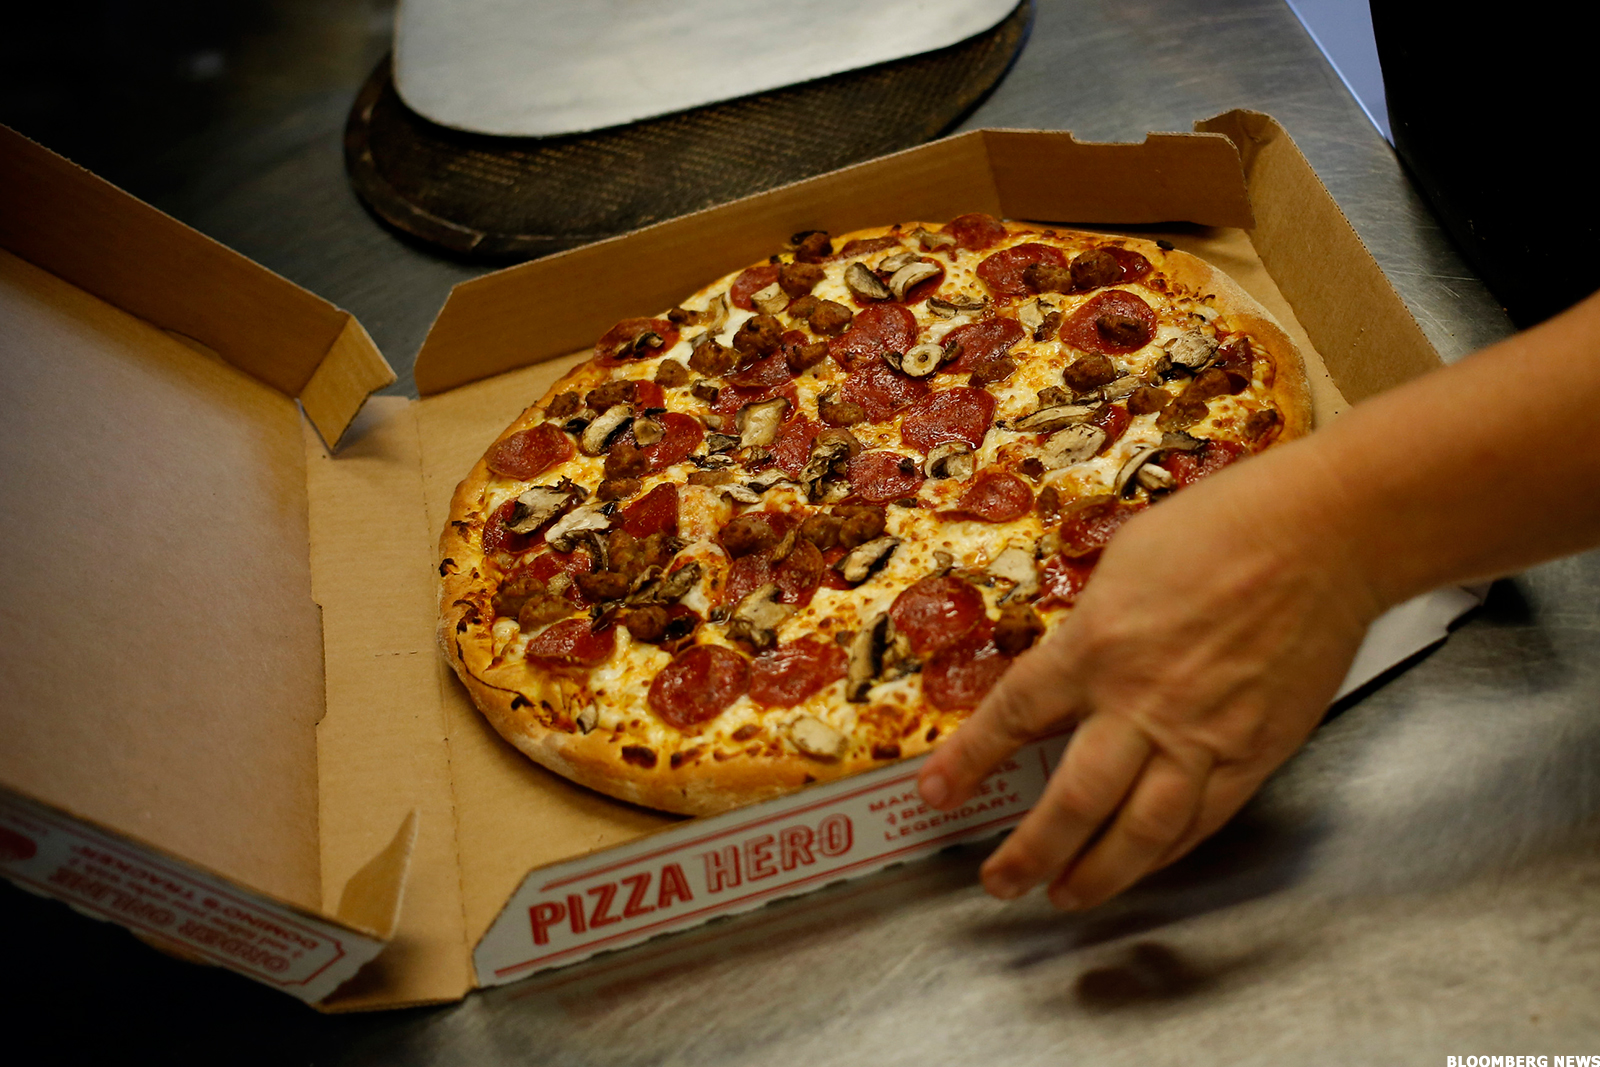 Domino 39 s pizza dpz stock rising after q2 earnings beat for Domino pizza